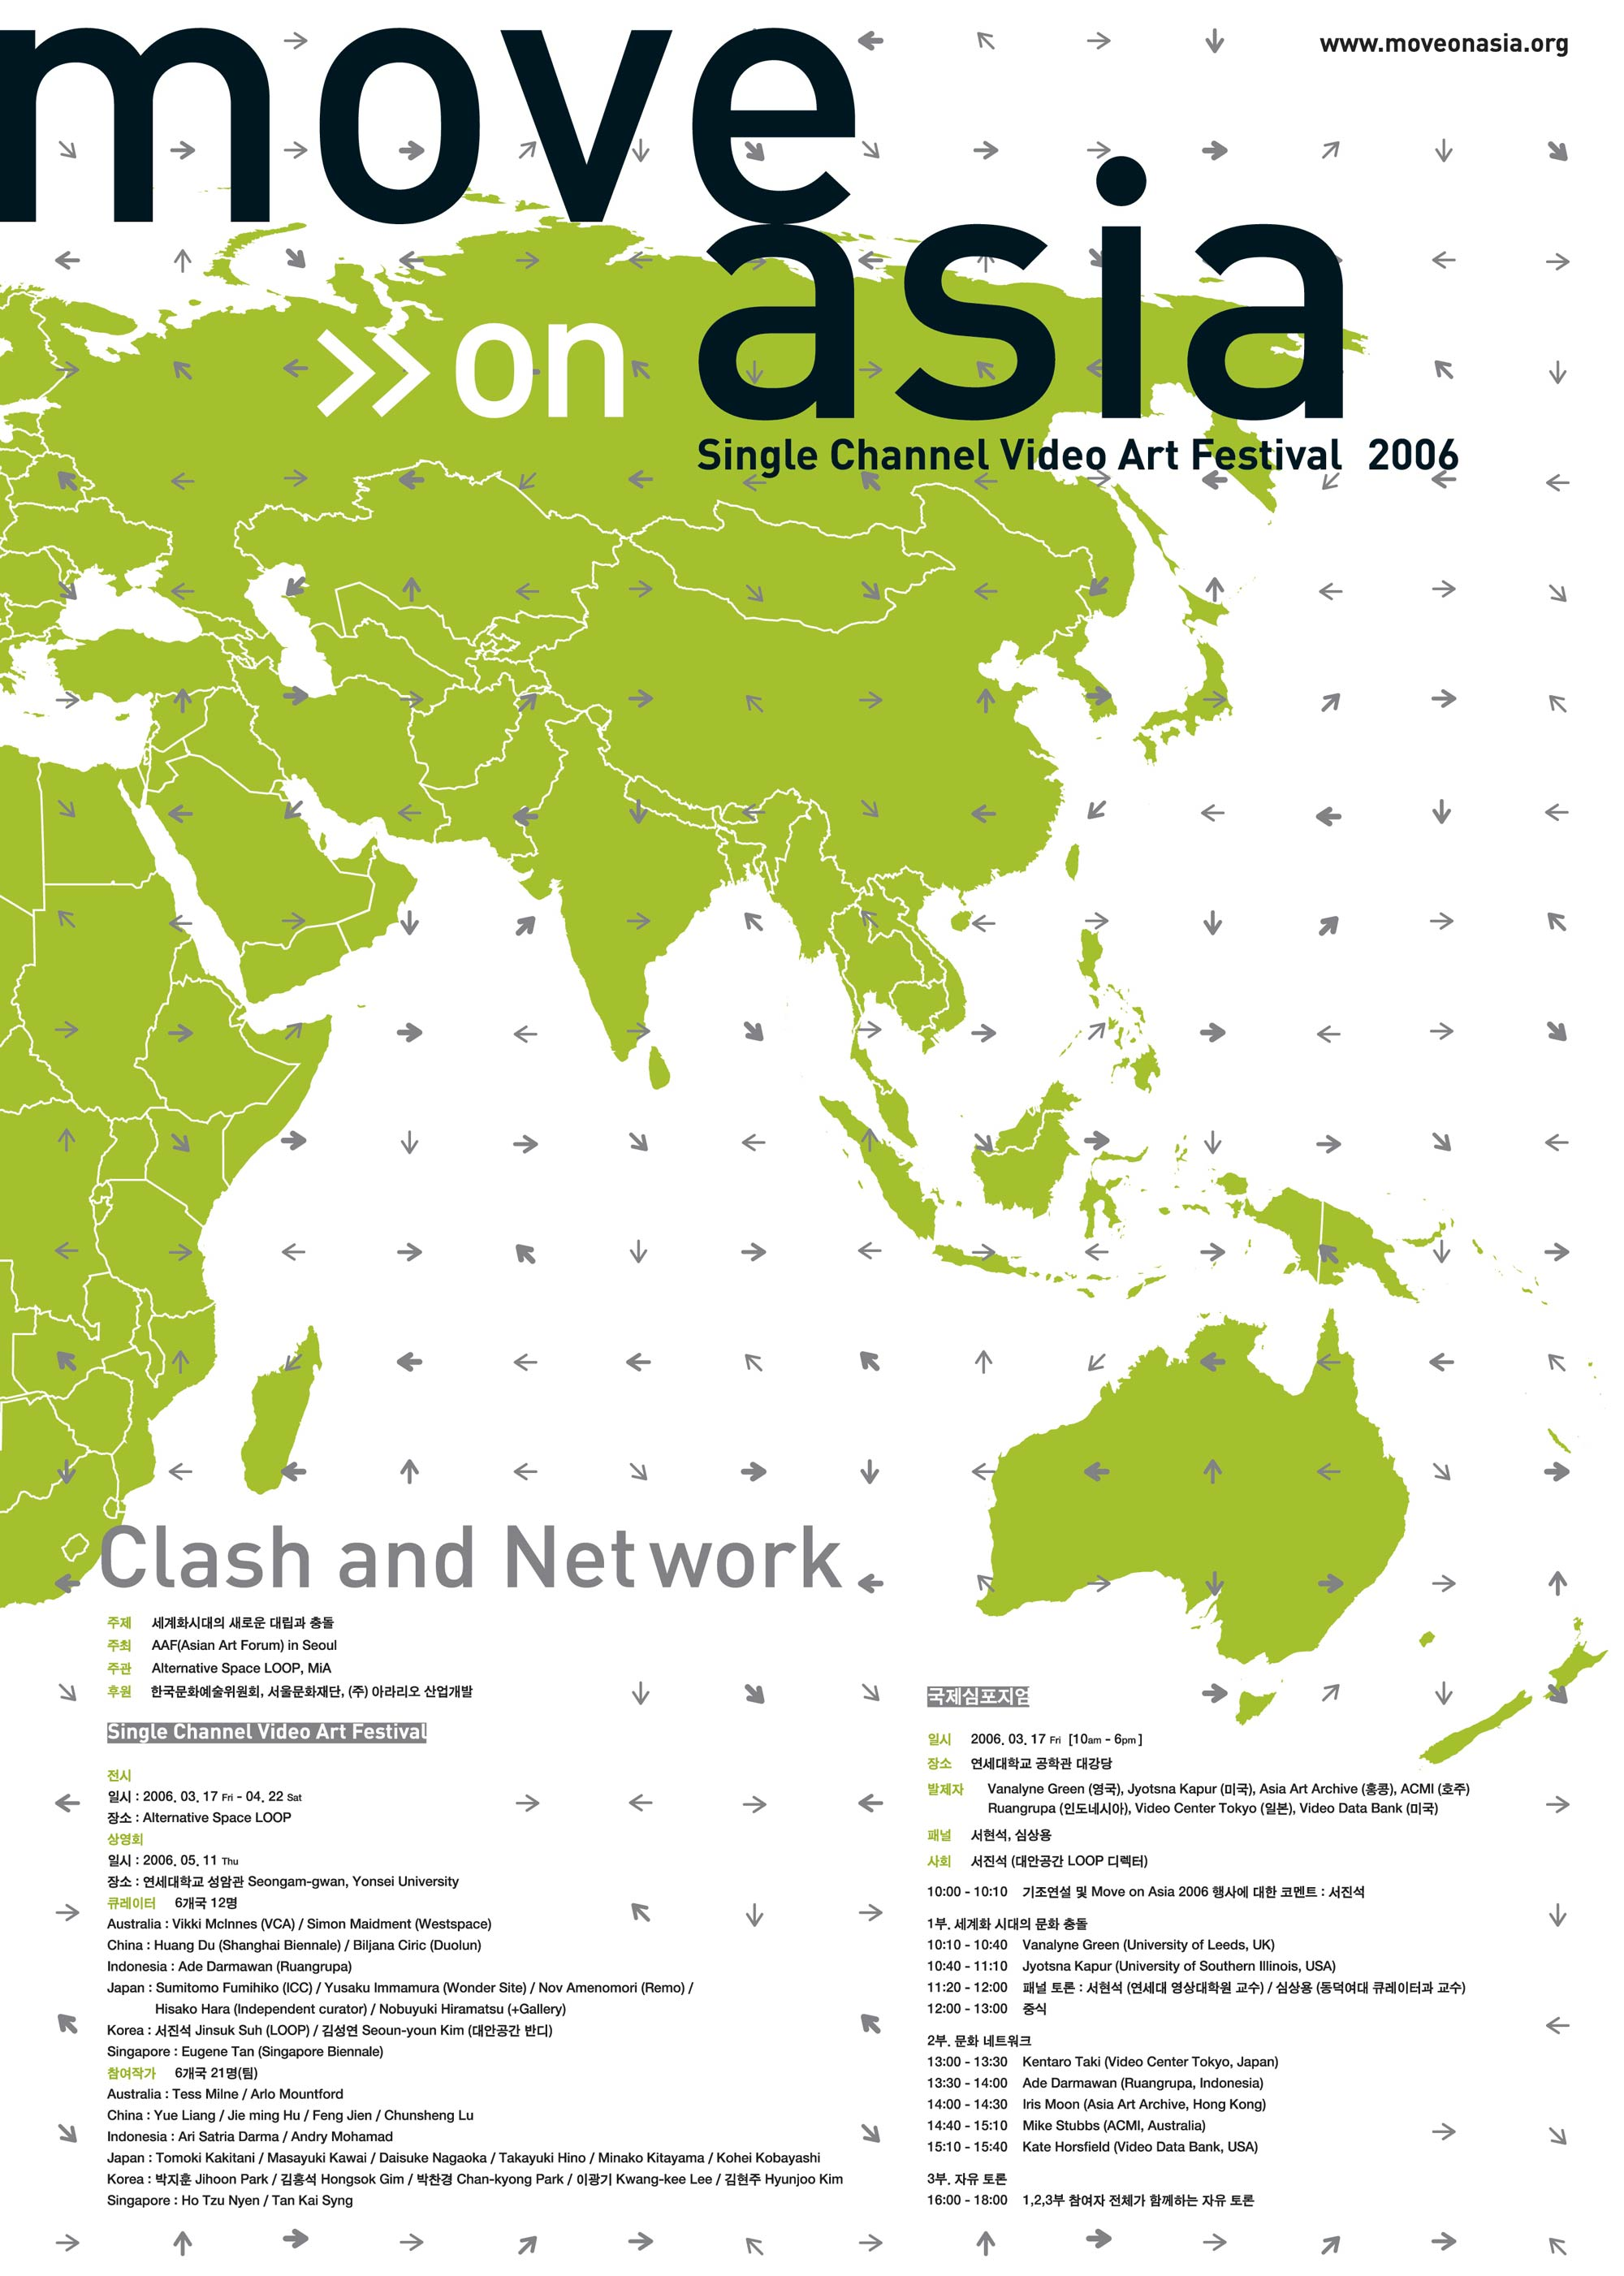 Move on Asia 2006: Clash and Network